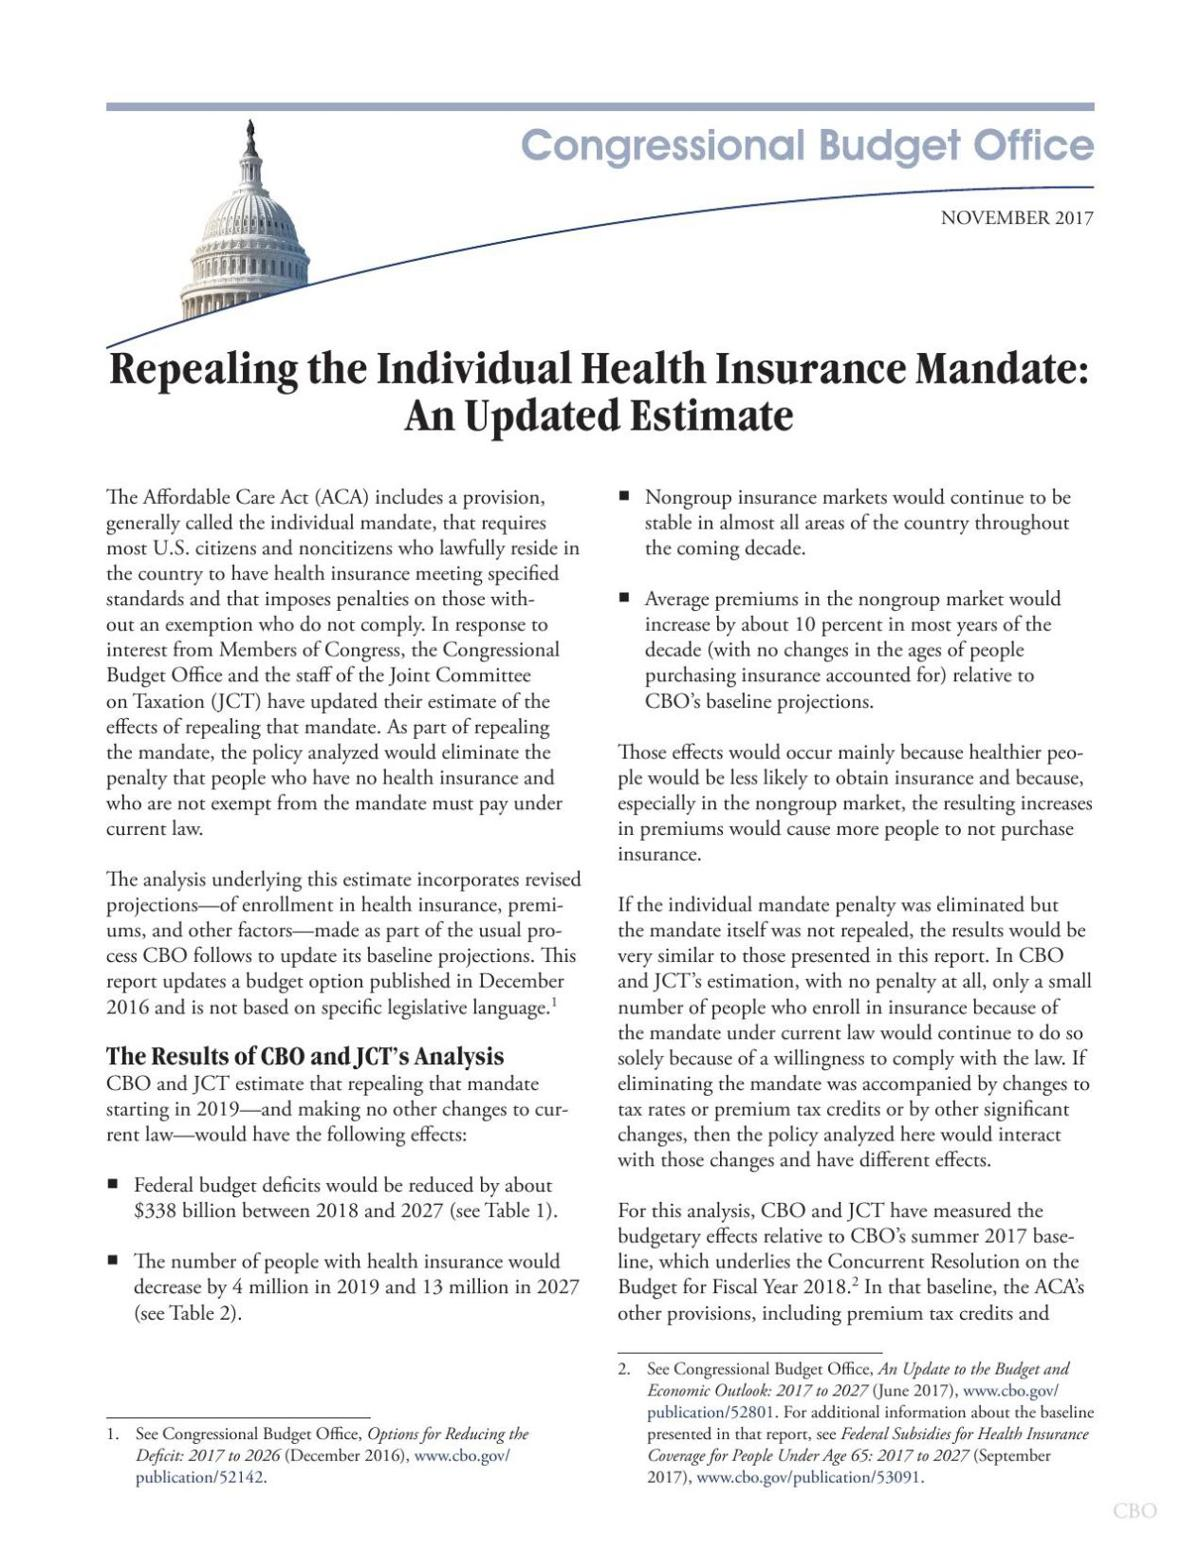 Congressional Budget Office November 2017 analysis on individual mandate. Report 53300